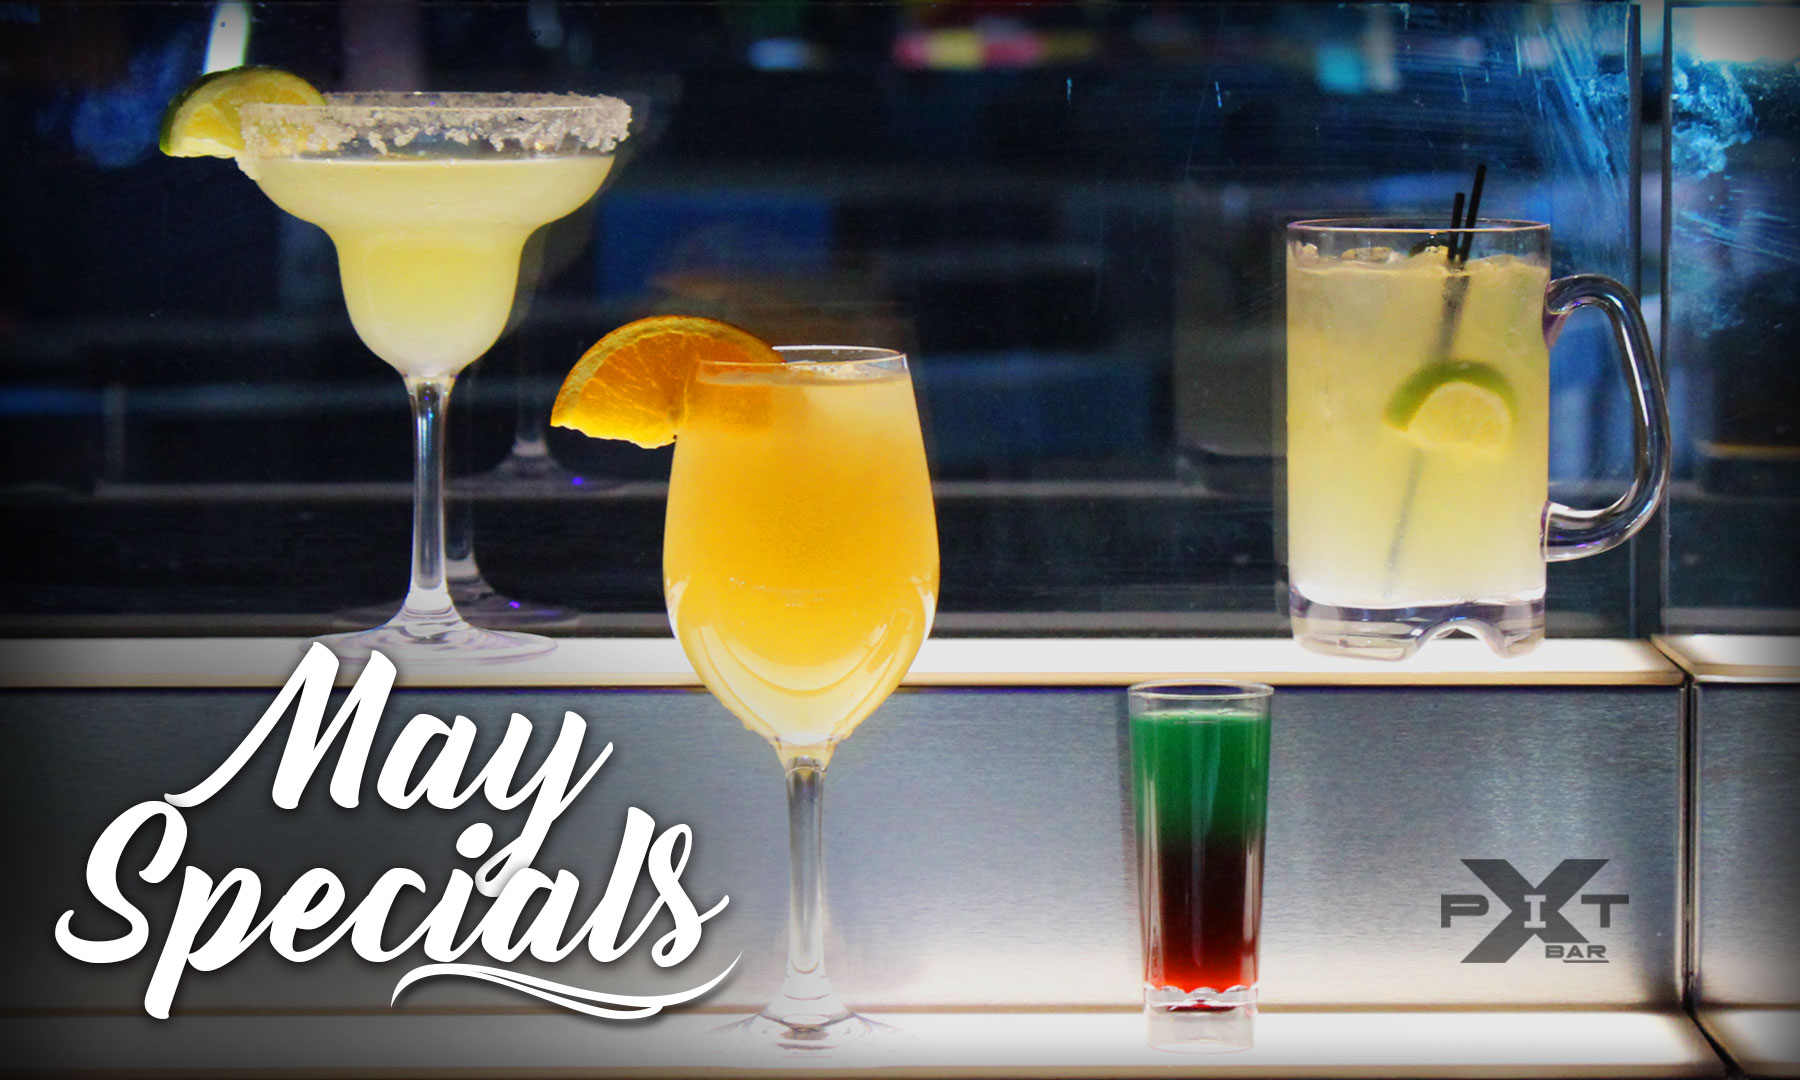 May Drink Specials at The Pit Bar